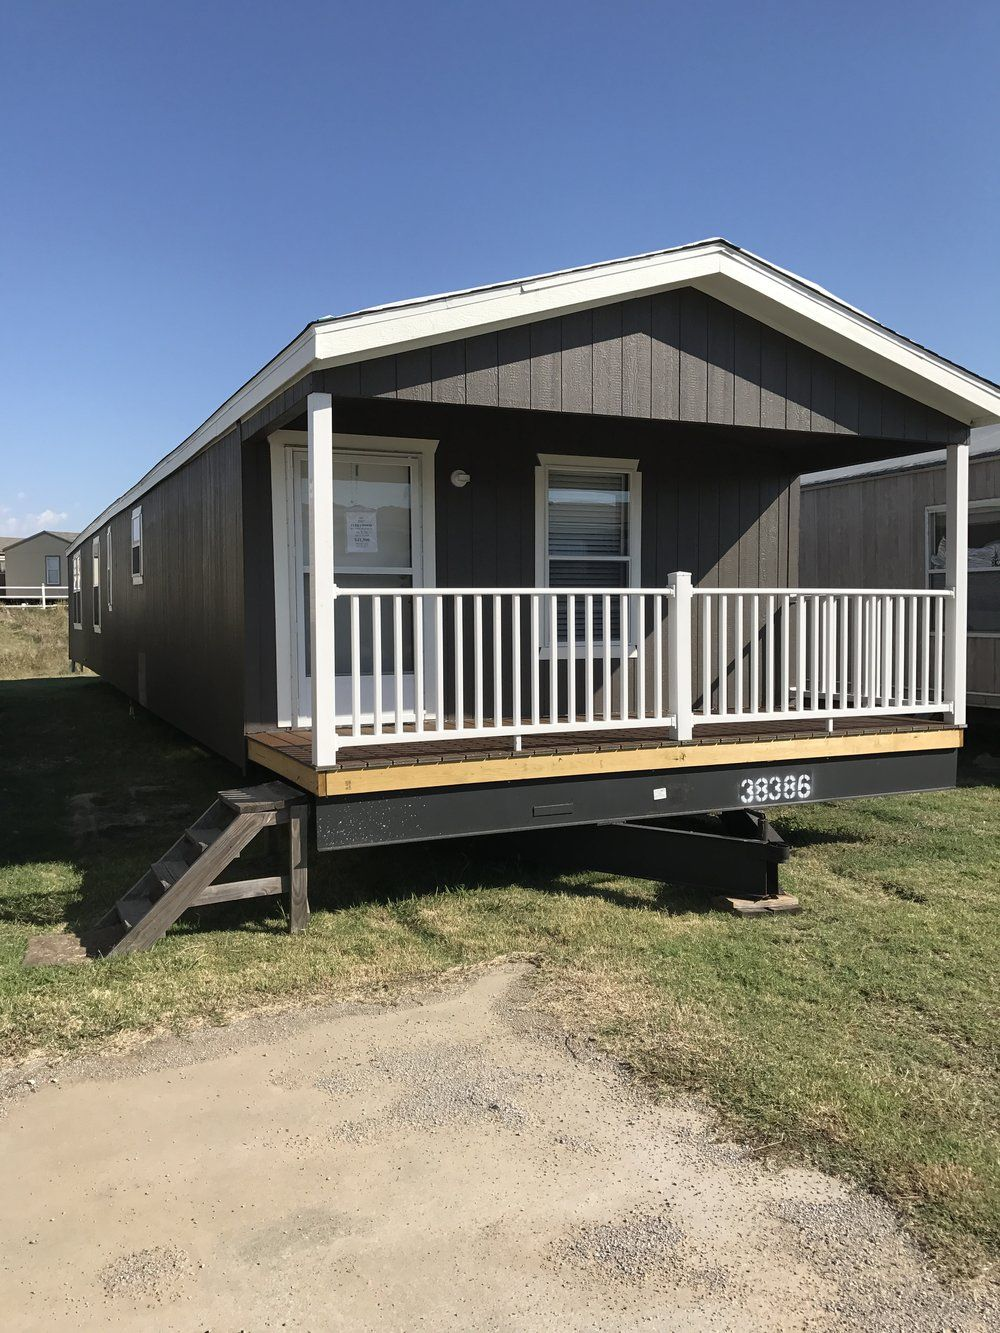 Best Manufactured Homes 2020.2020 Porch Model Fleetwood Weston 16722w Order Only In